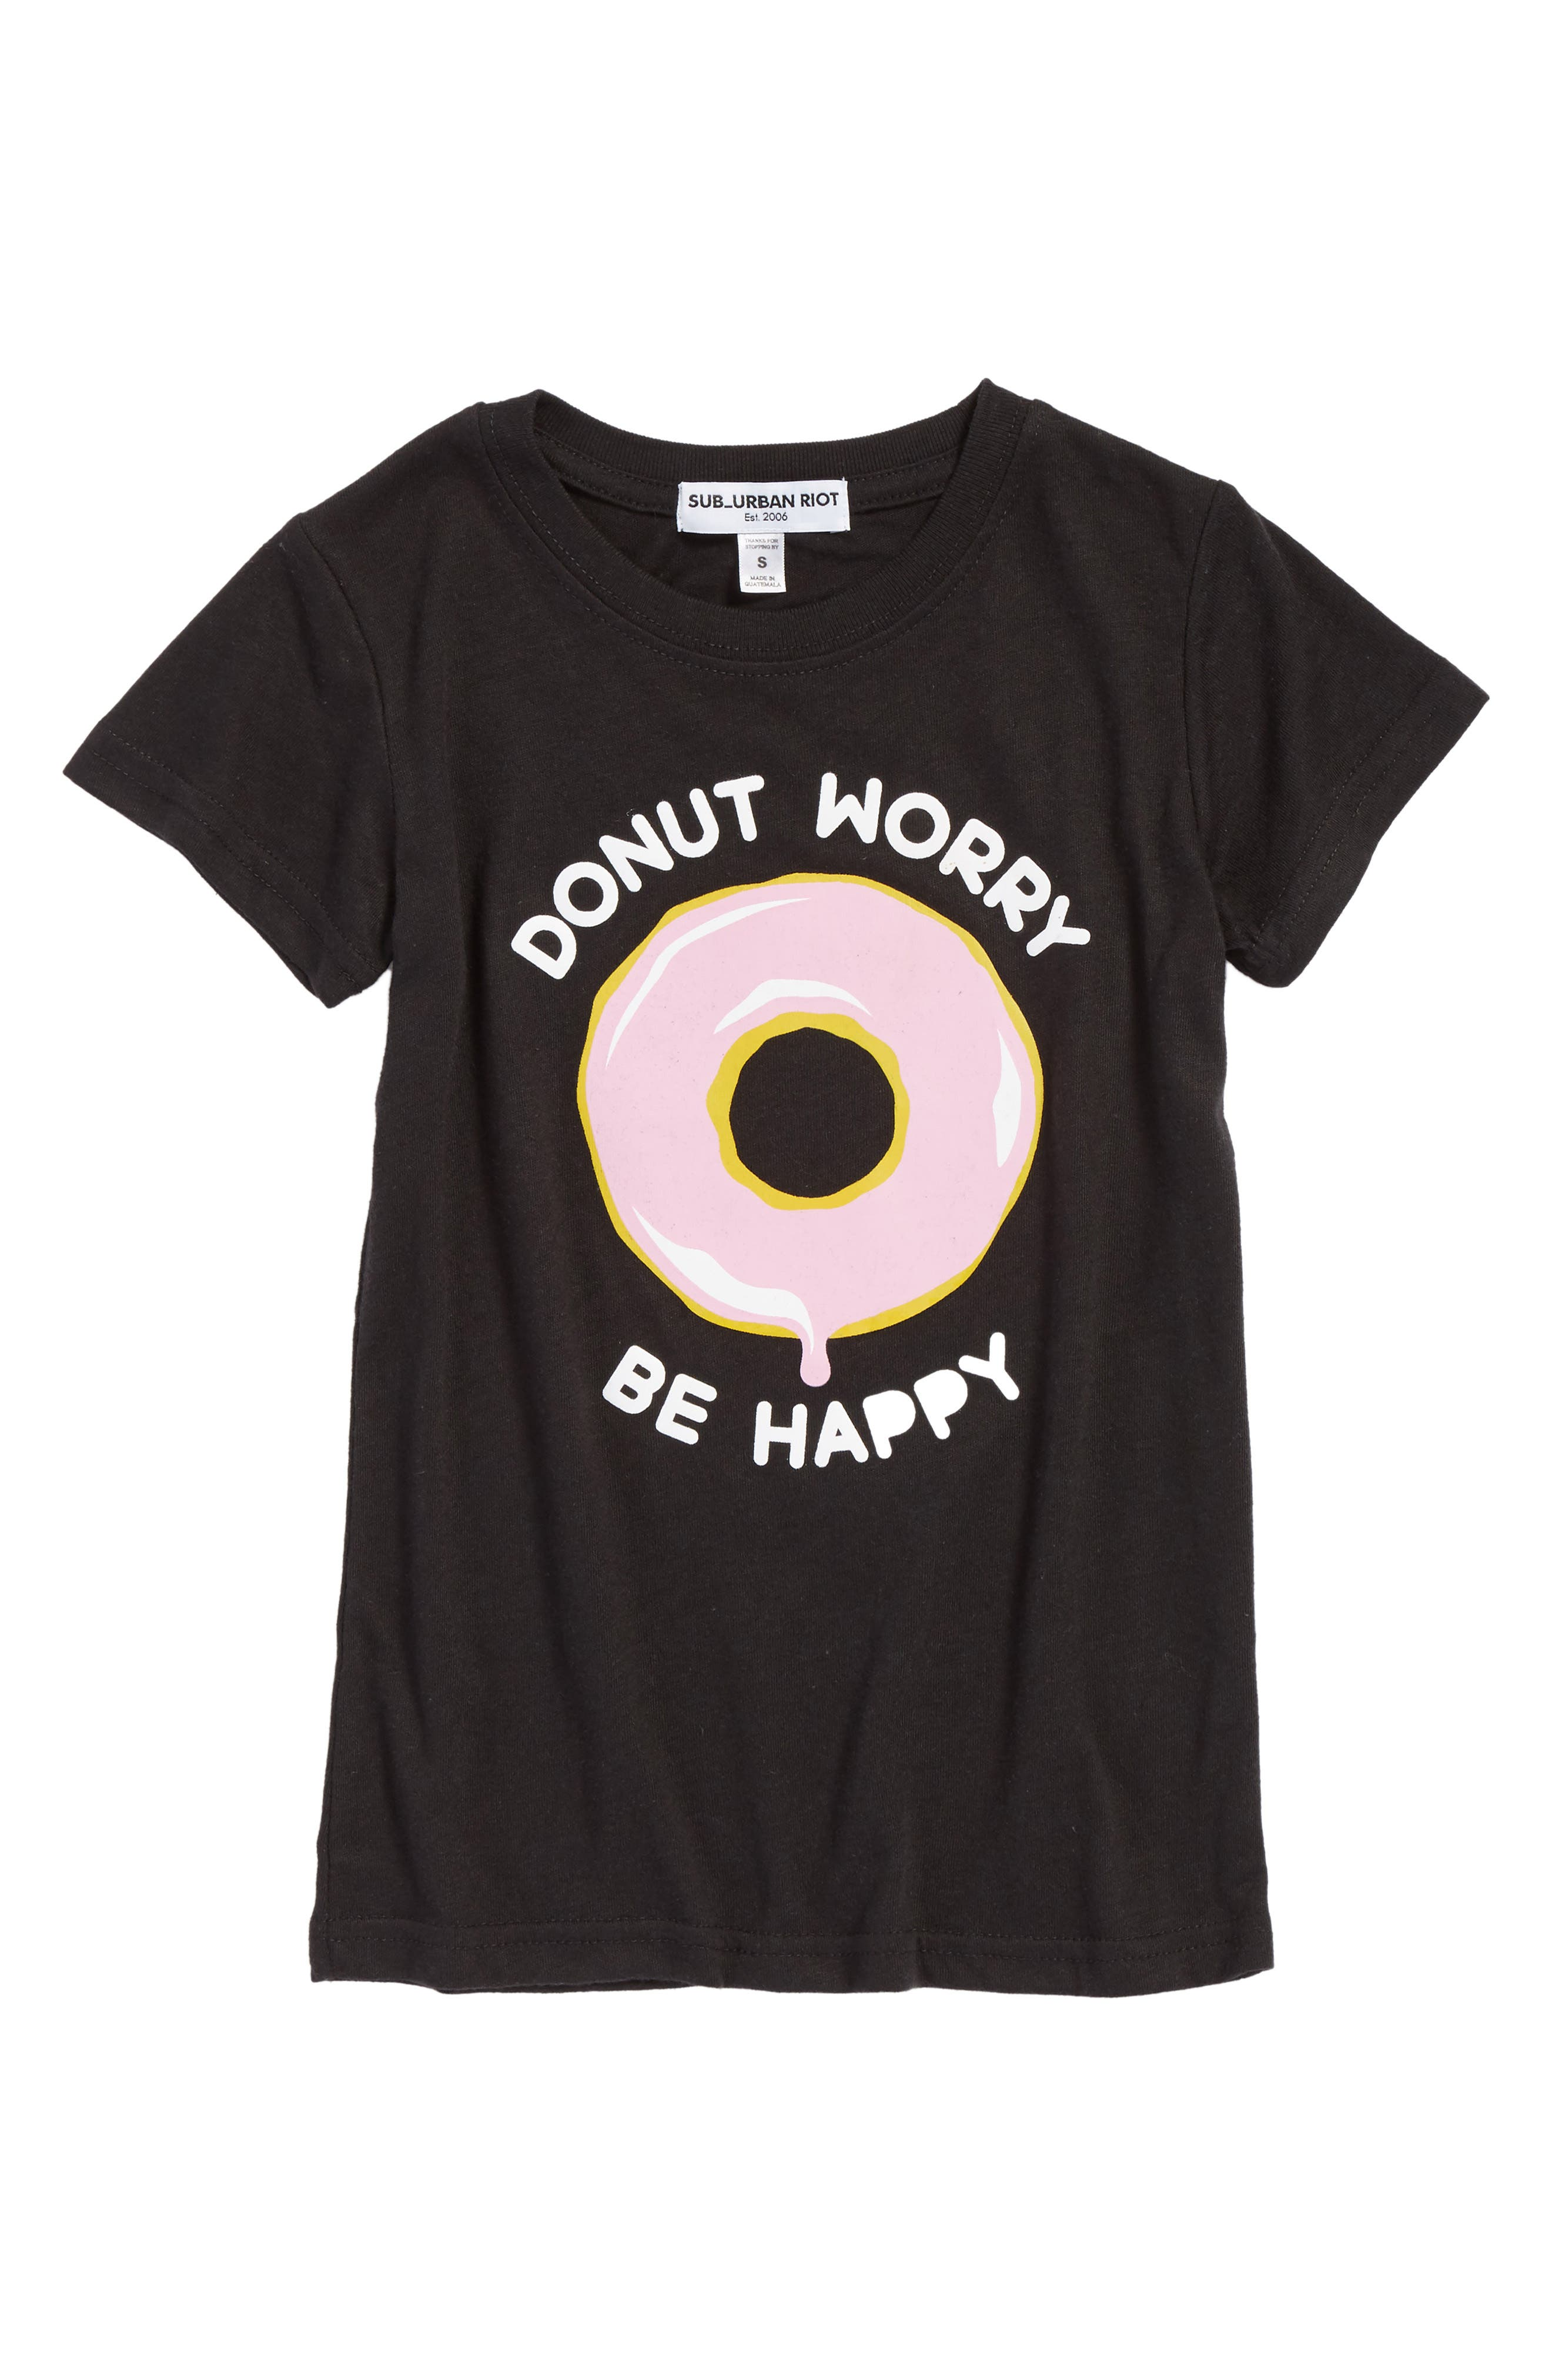 Sub_Urban Riot Donut Worry Graphic Tee (Big Girls)